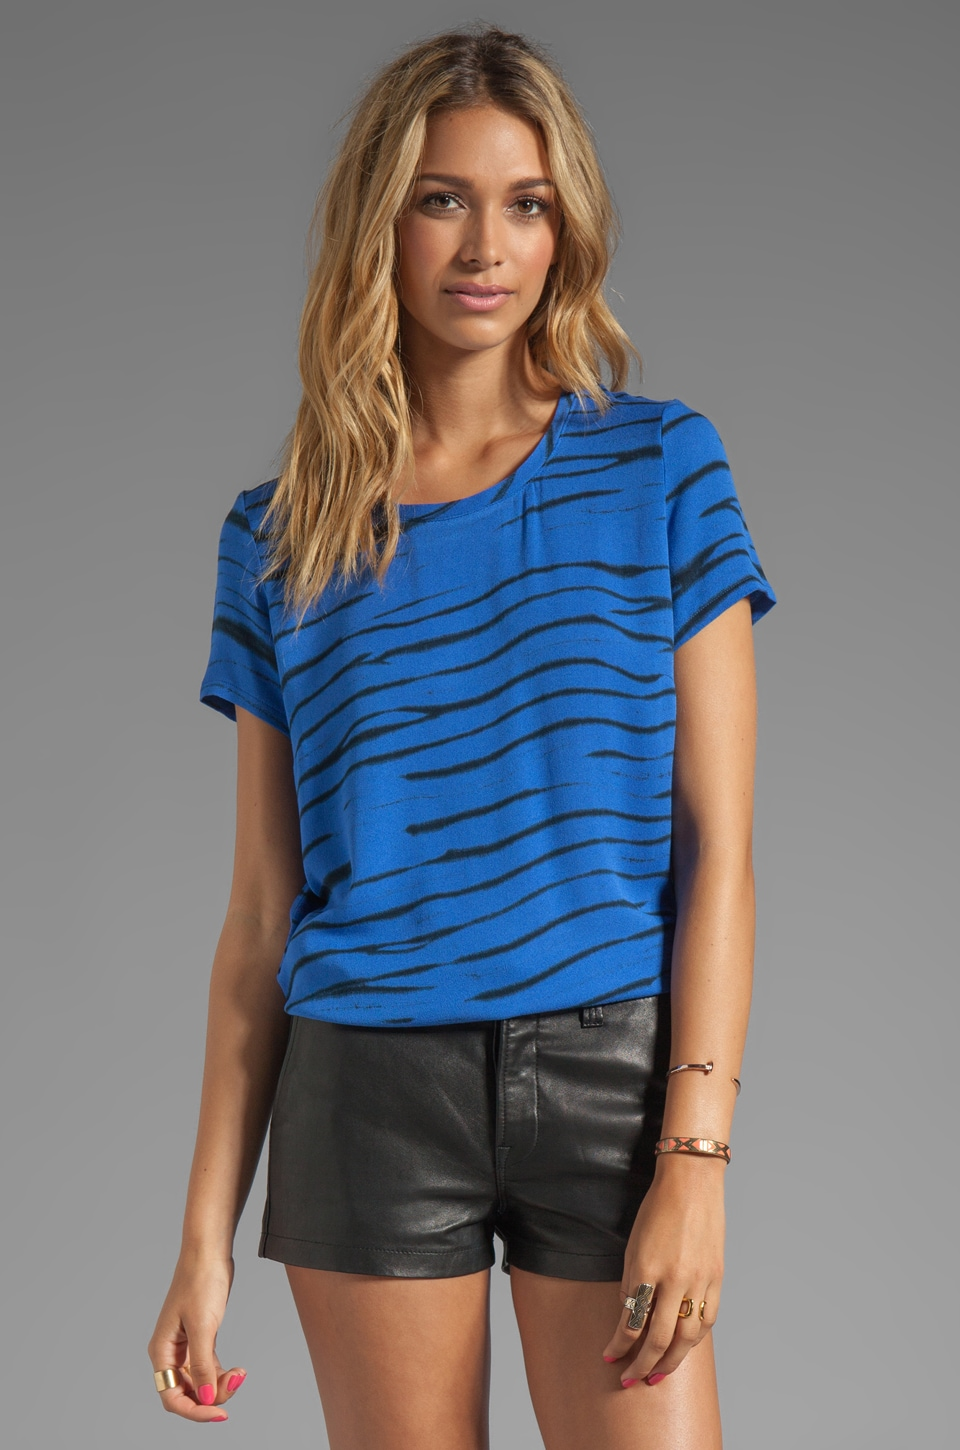 Generation Love Vinnie Animal Print Top in Black/Cobalt